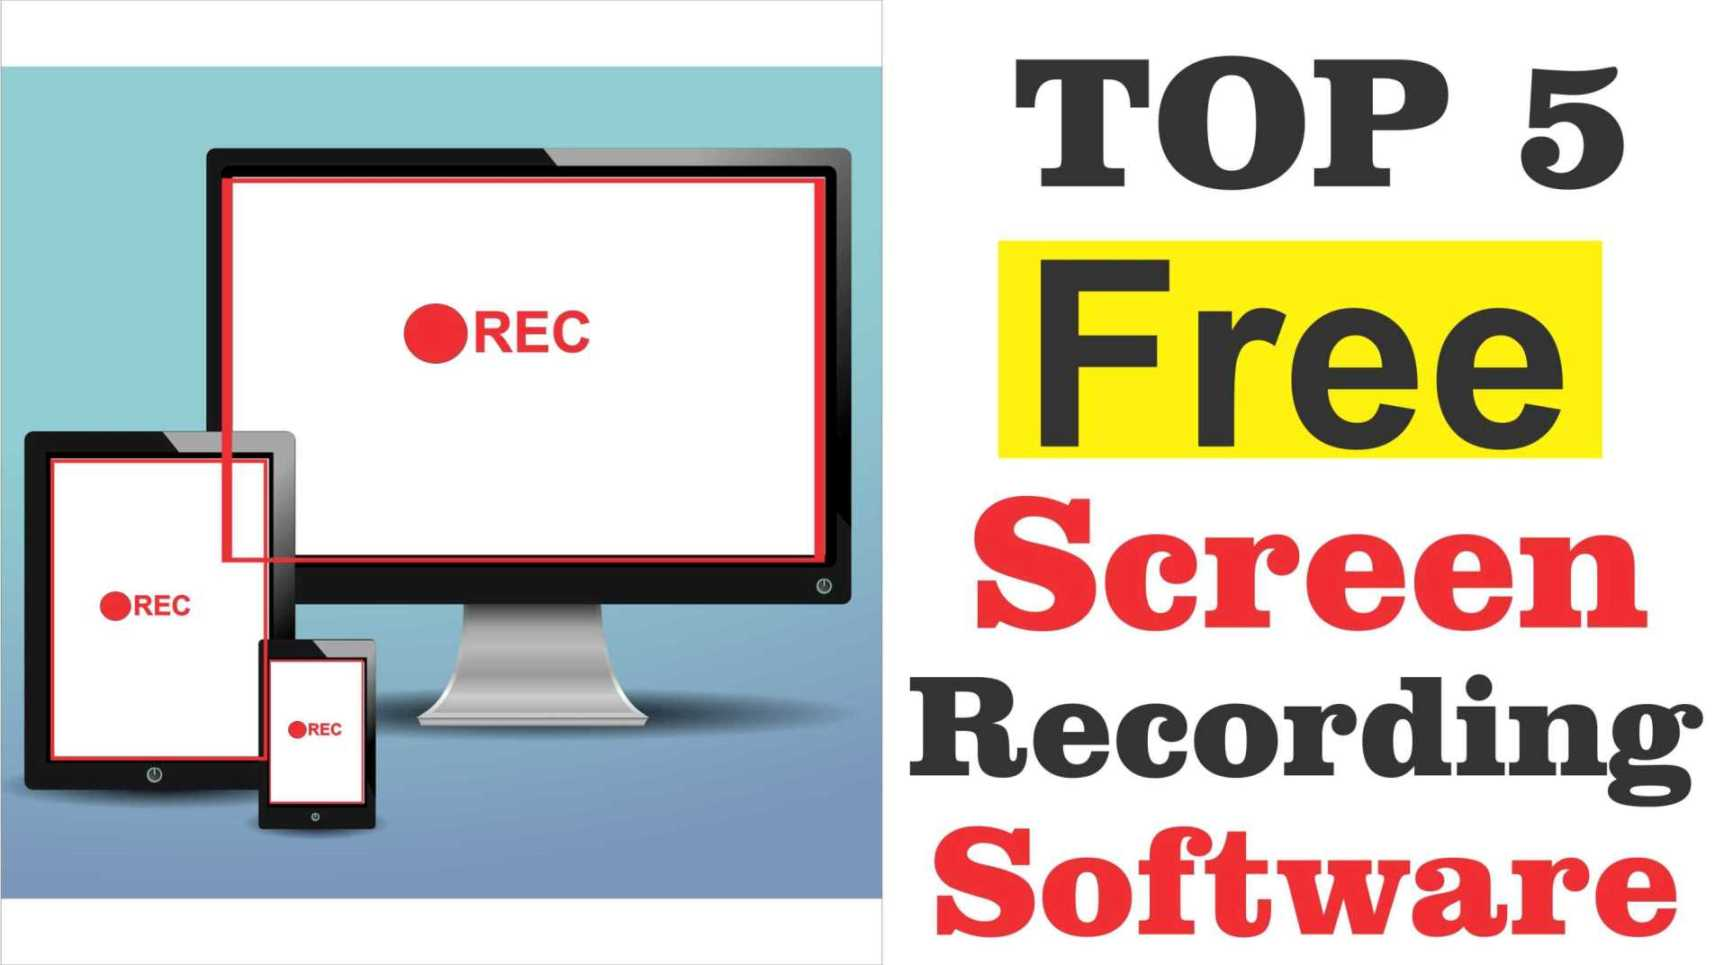 Top 5 Best Free Screen Recording Software For PC without Watermark